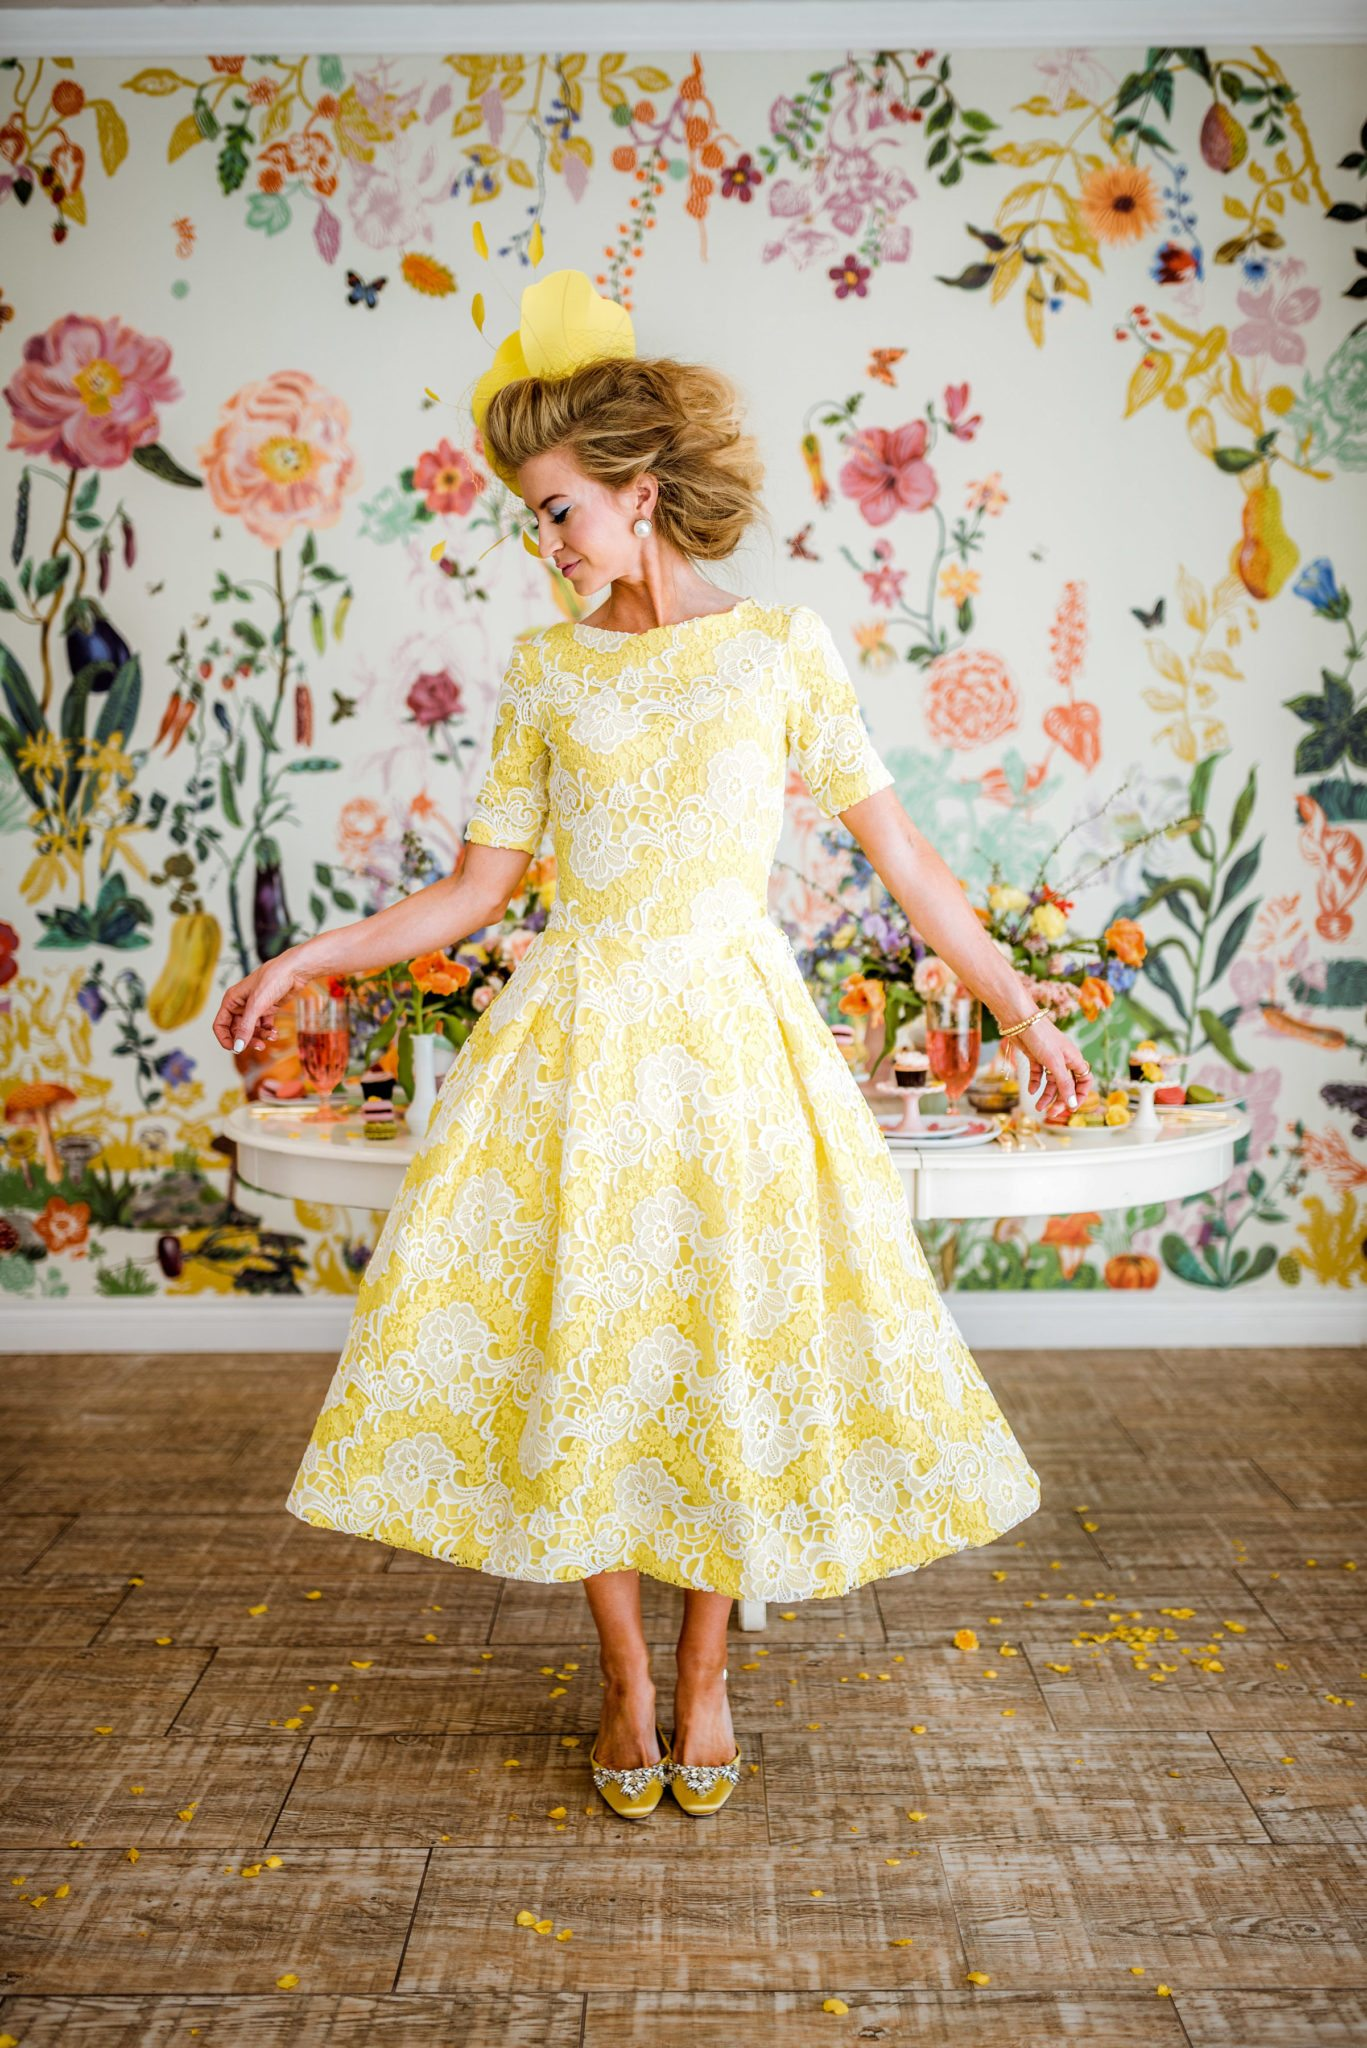 The April Dress, part of The Monthly Dress Series by Leanne Barlow